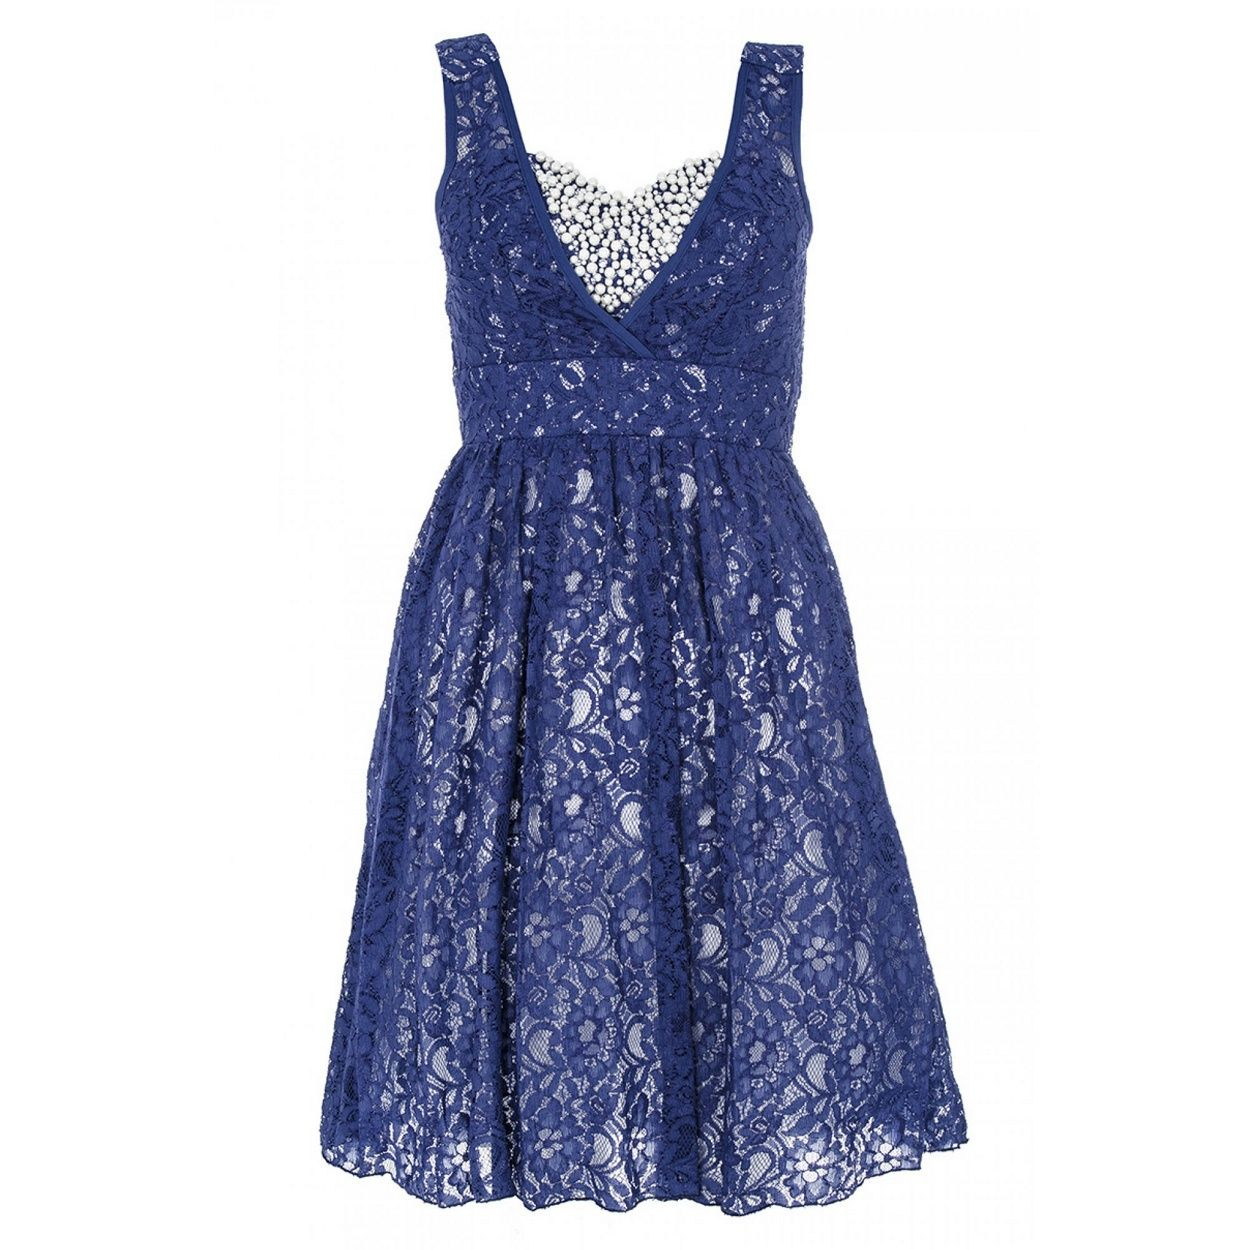 My birthday dress :) Blue and Cream Lace Bustier Pearl Dress- at ...